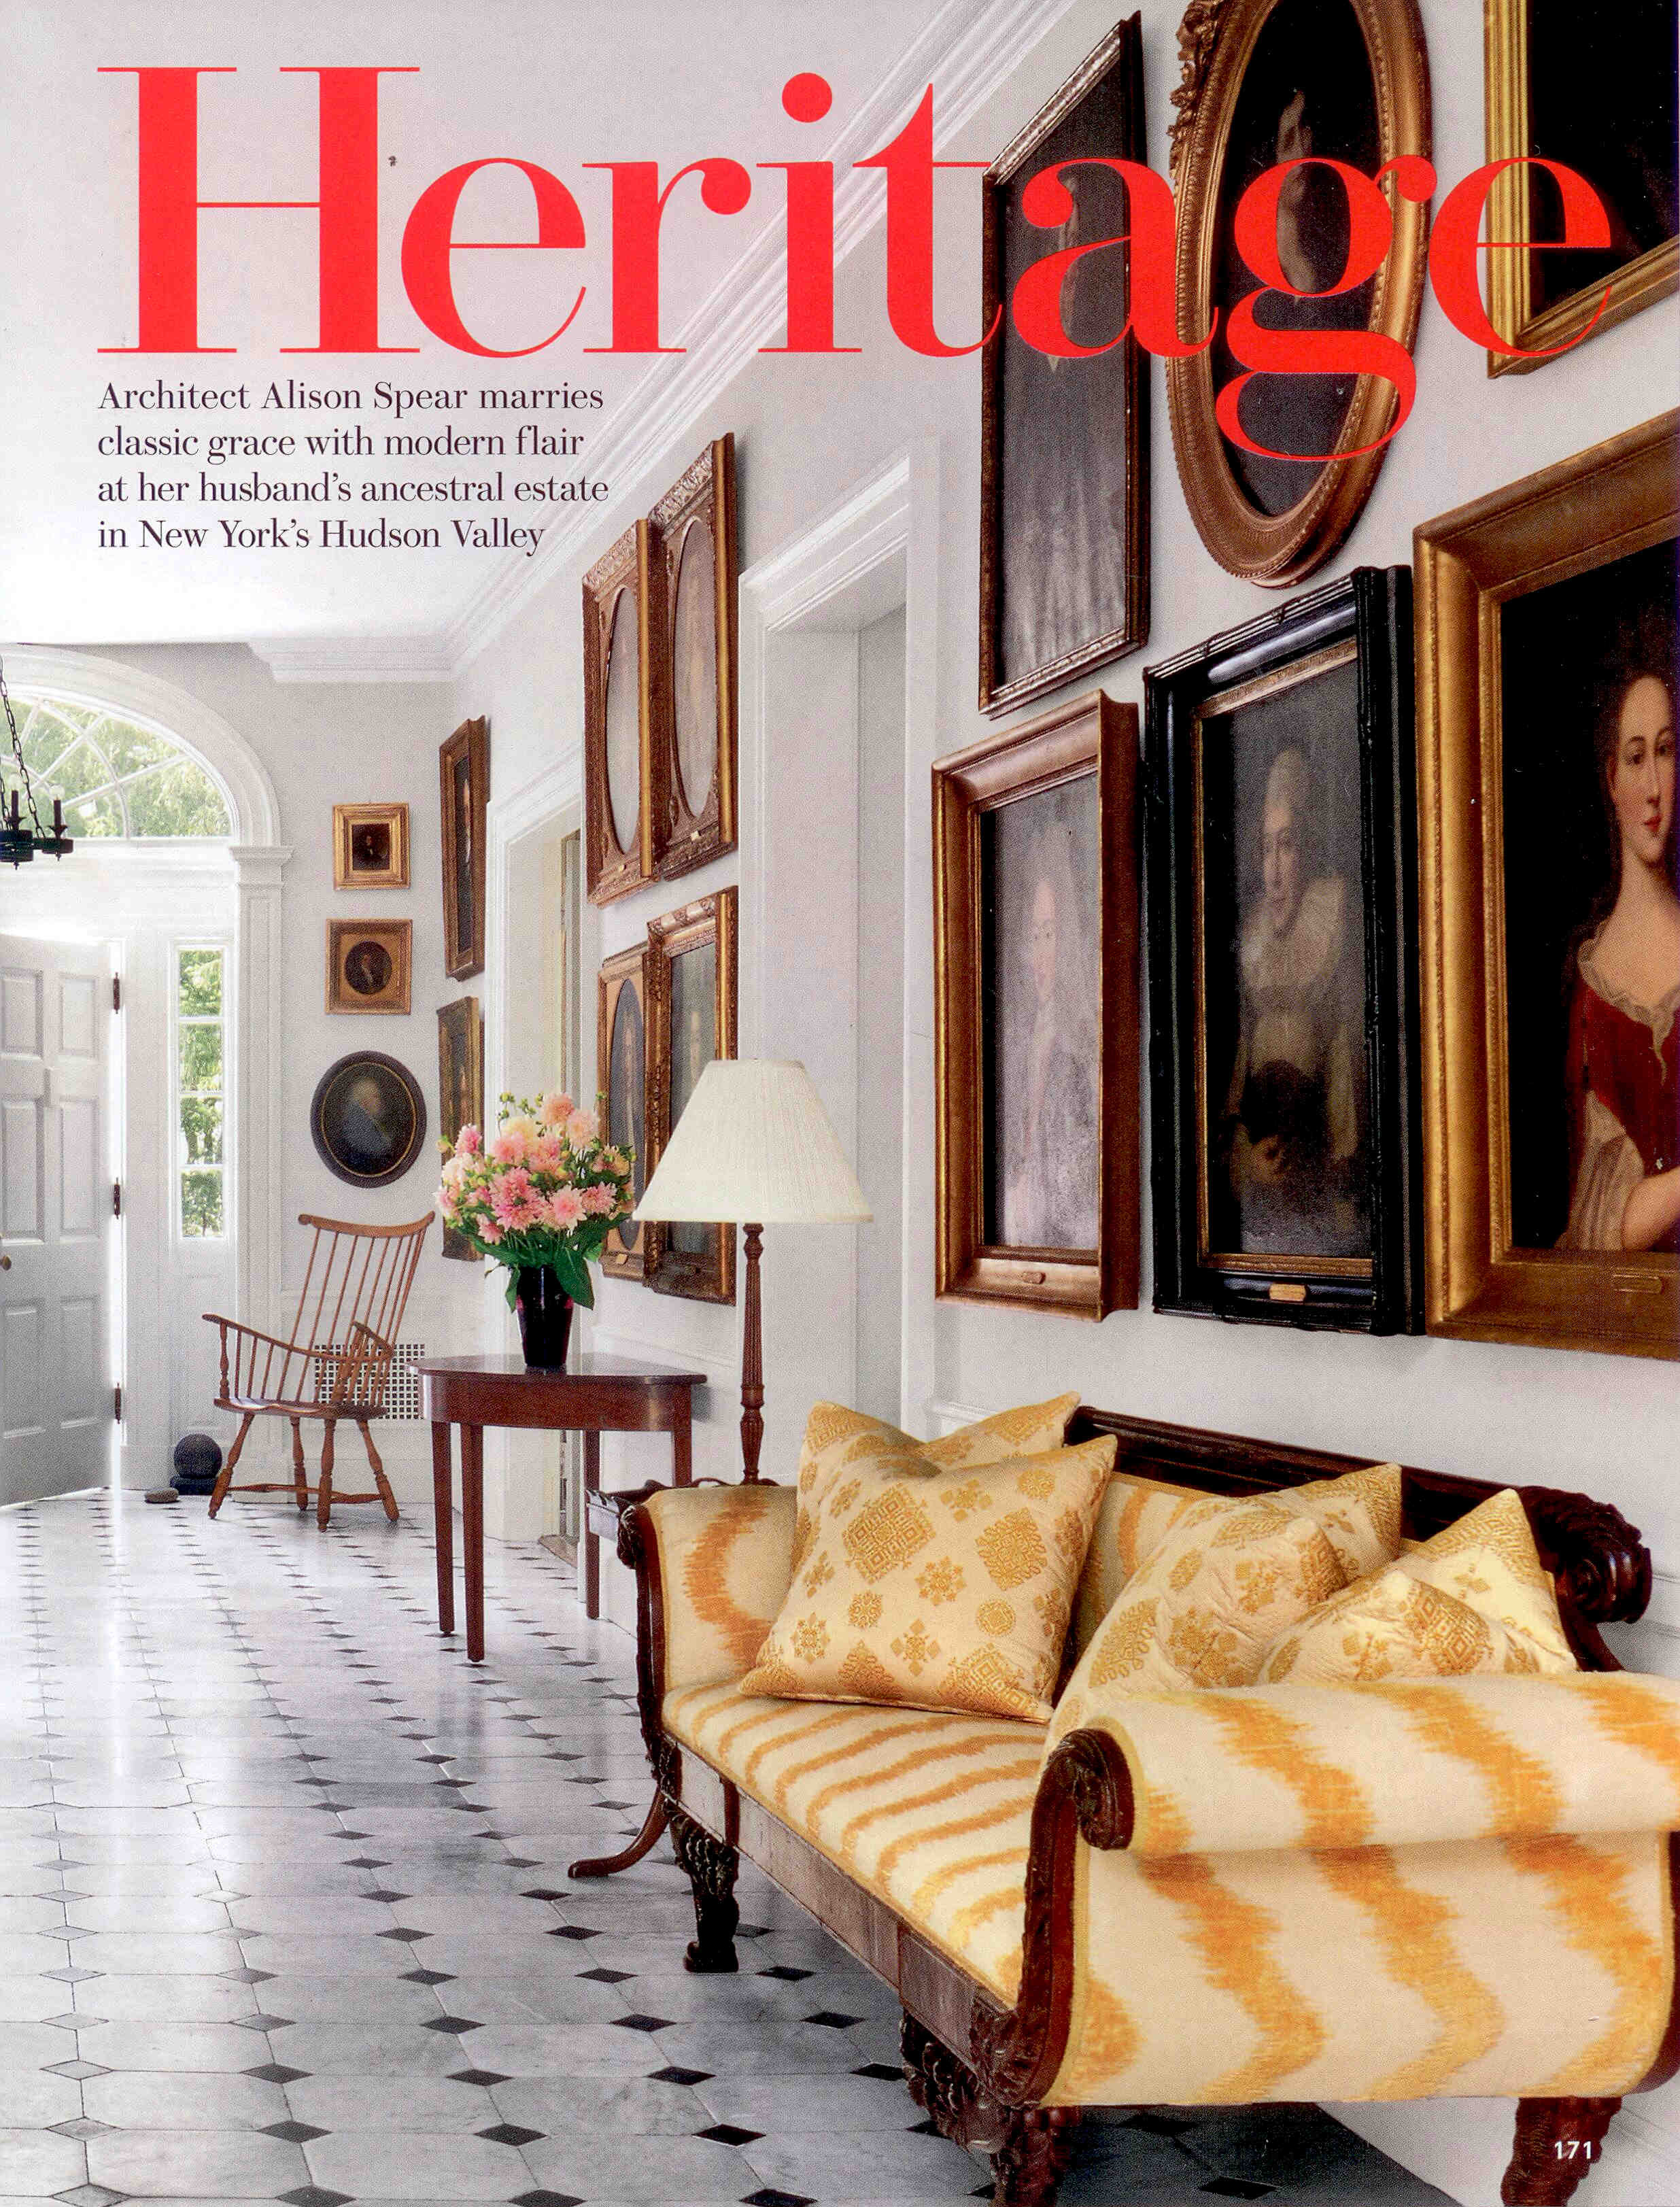 Architect-Alison-Spears-renovates-her-husbands-ancestral-home-in-New-York-s-Hudson-Valley-AD-June-wallpaper-wp300122